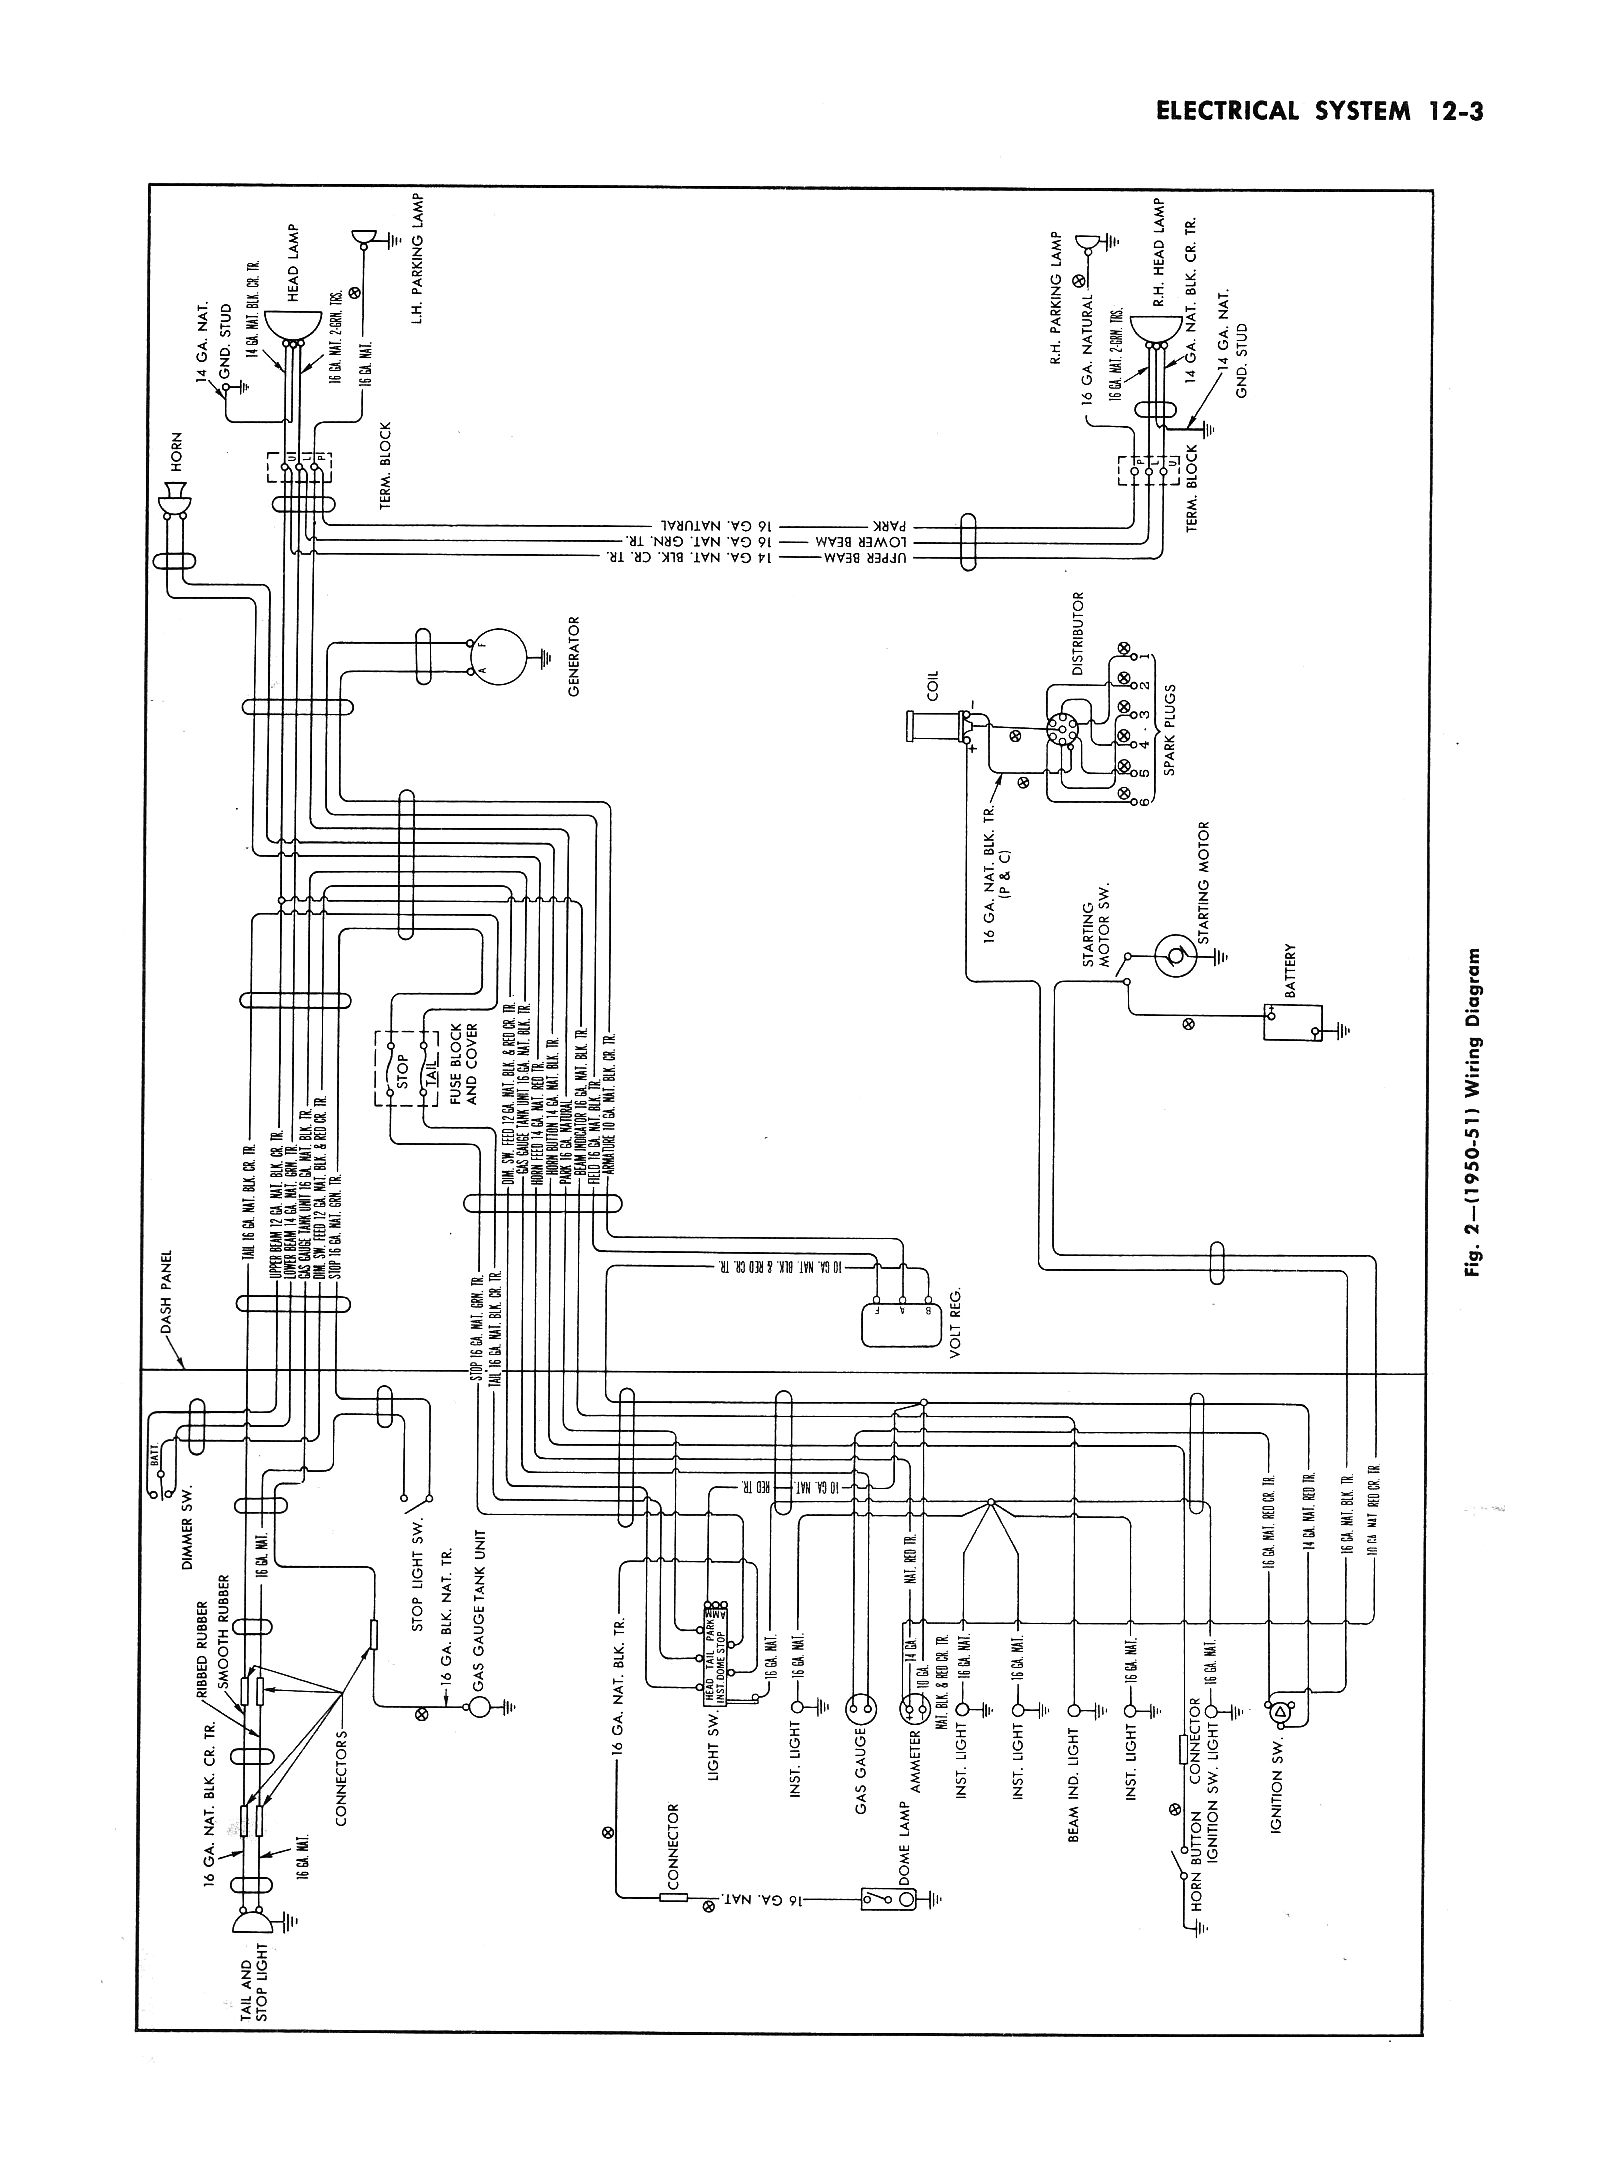 Chevy Wiring Diagrams - Wiring Schematic Diagram